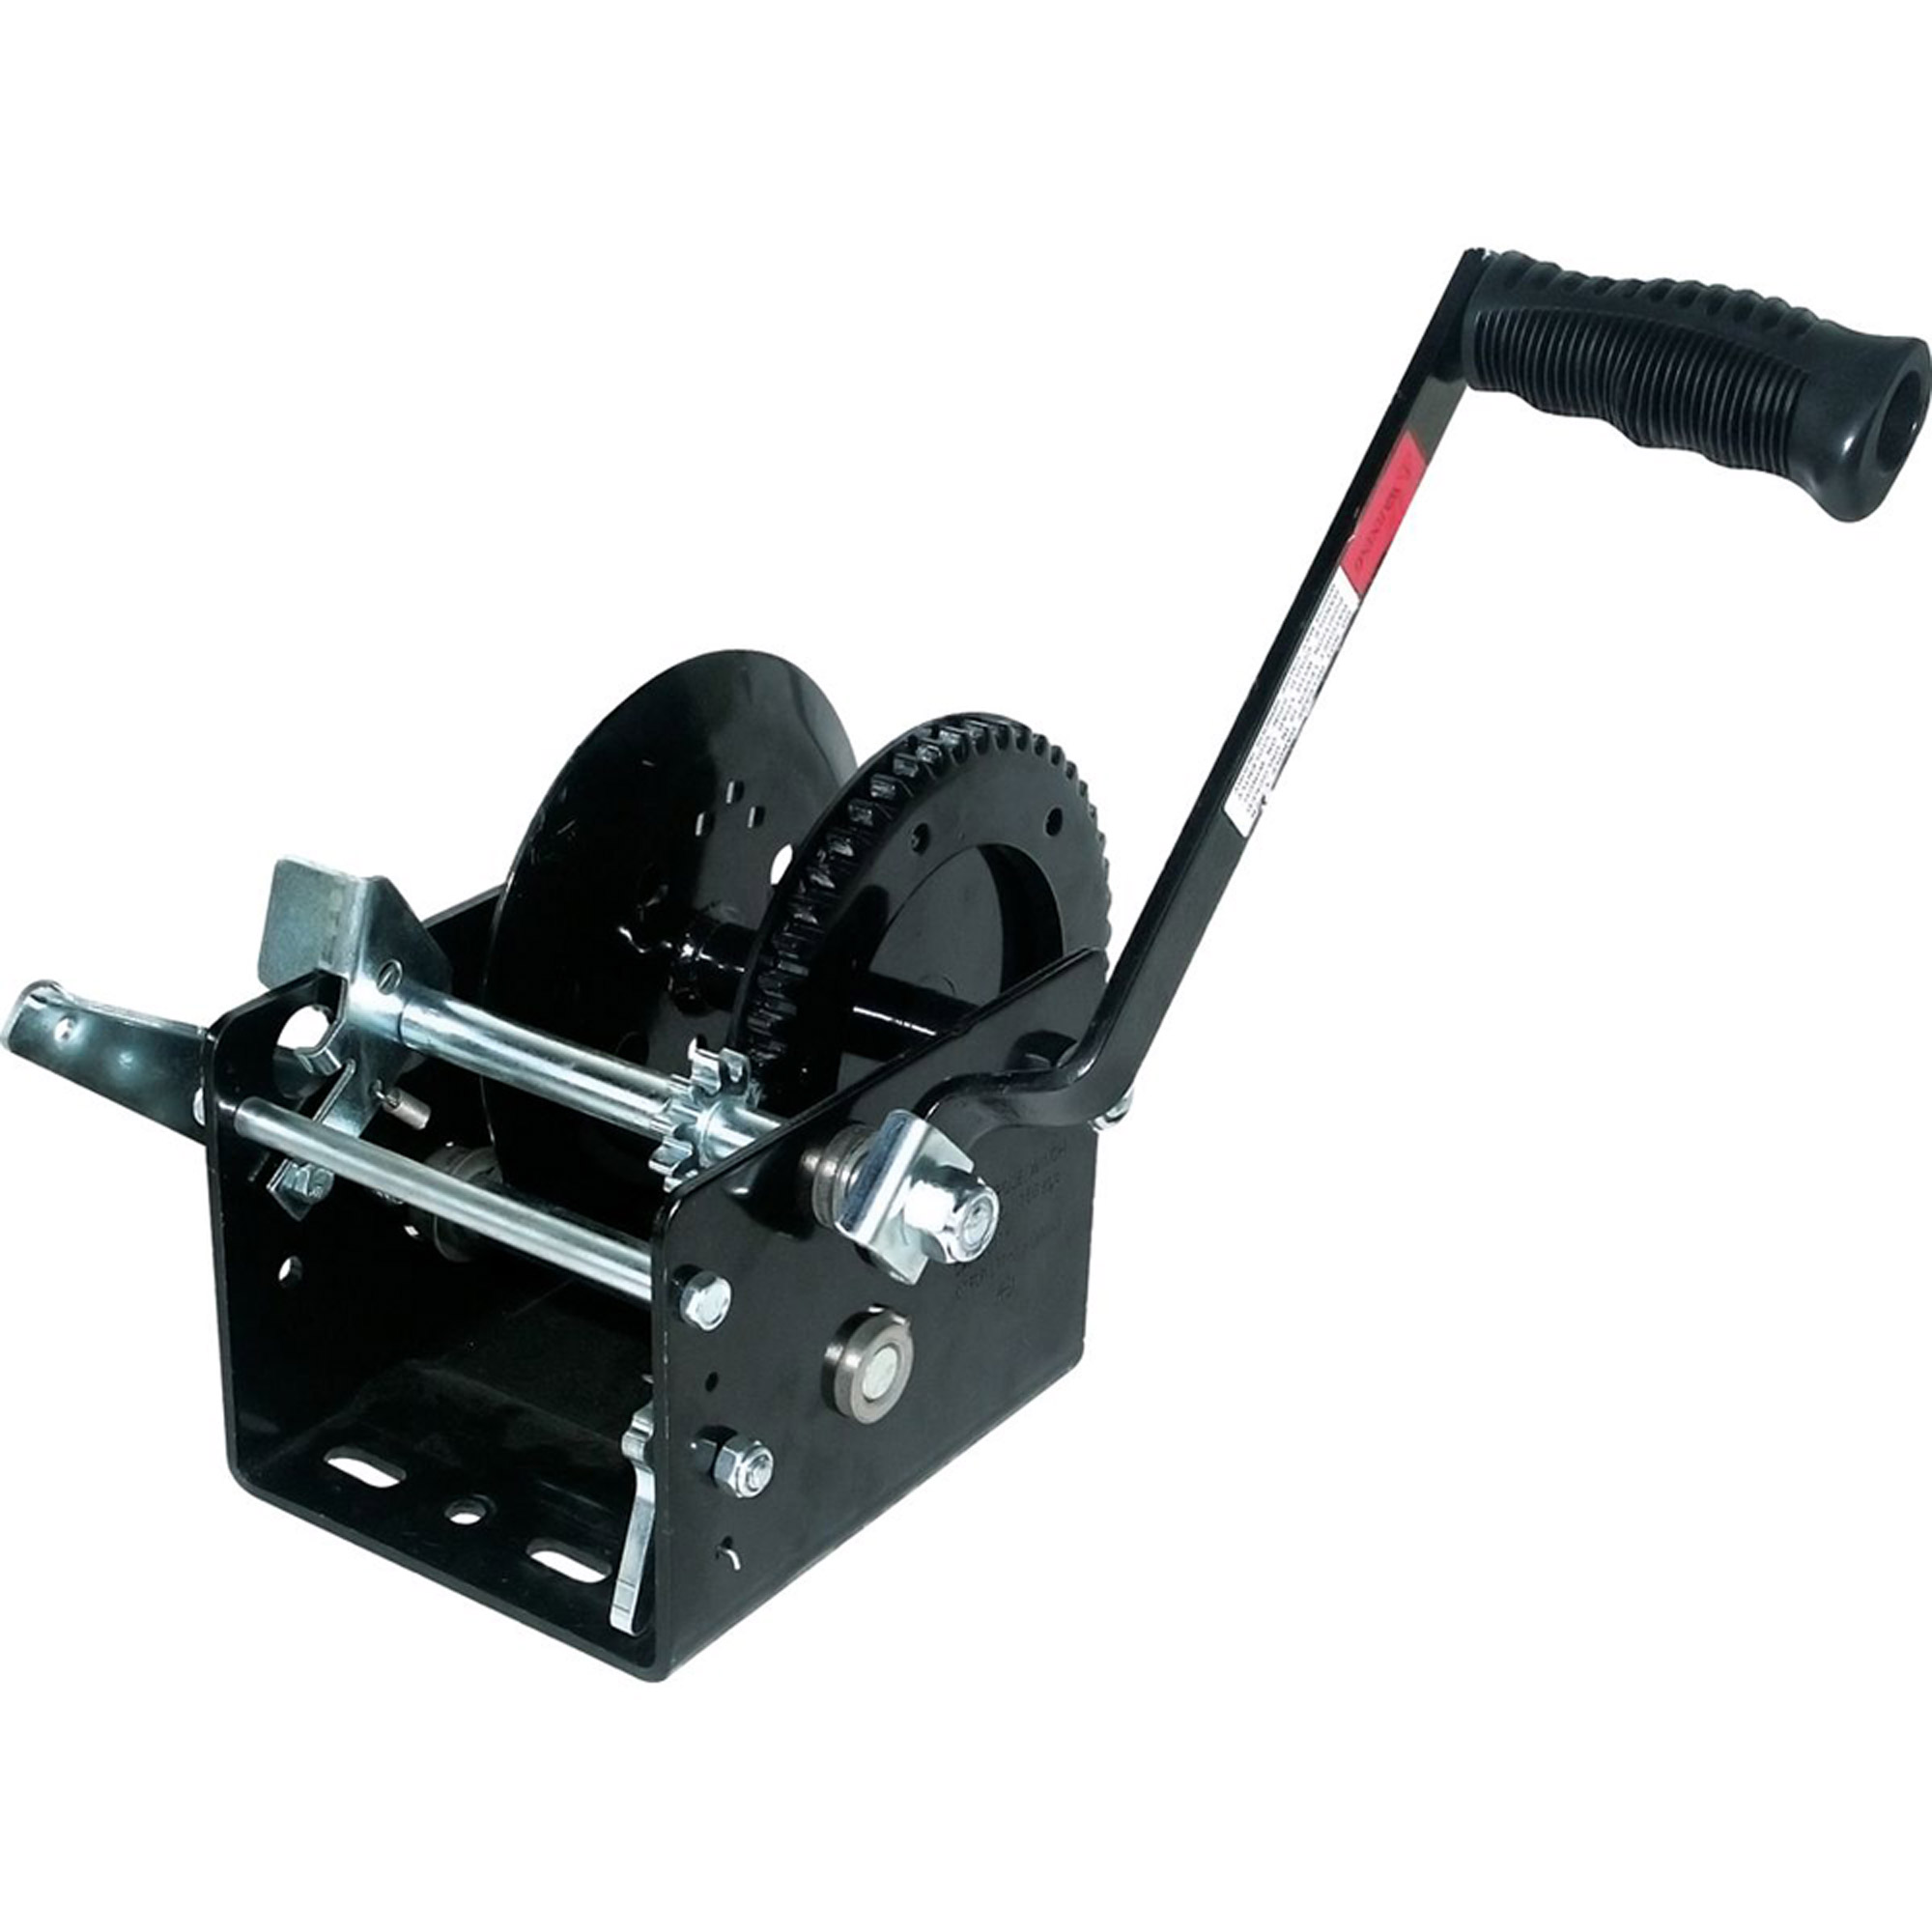 SeaSense 2500 lbs 2-Speed Seacoat Trailer Winch with Brake, 25' Strap